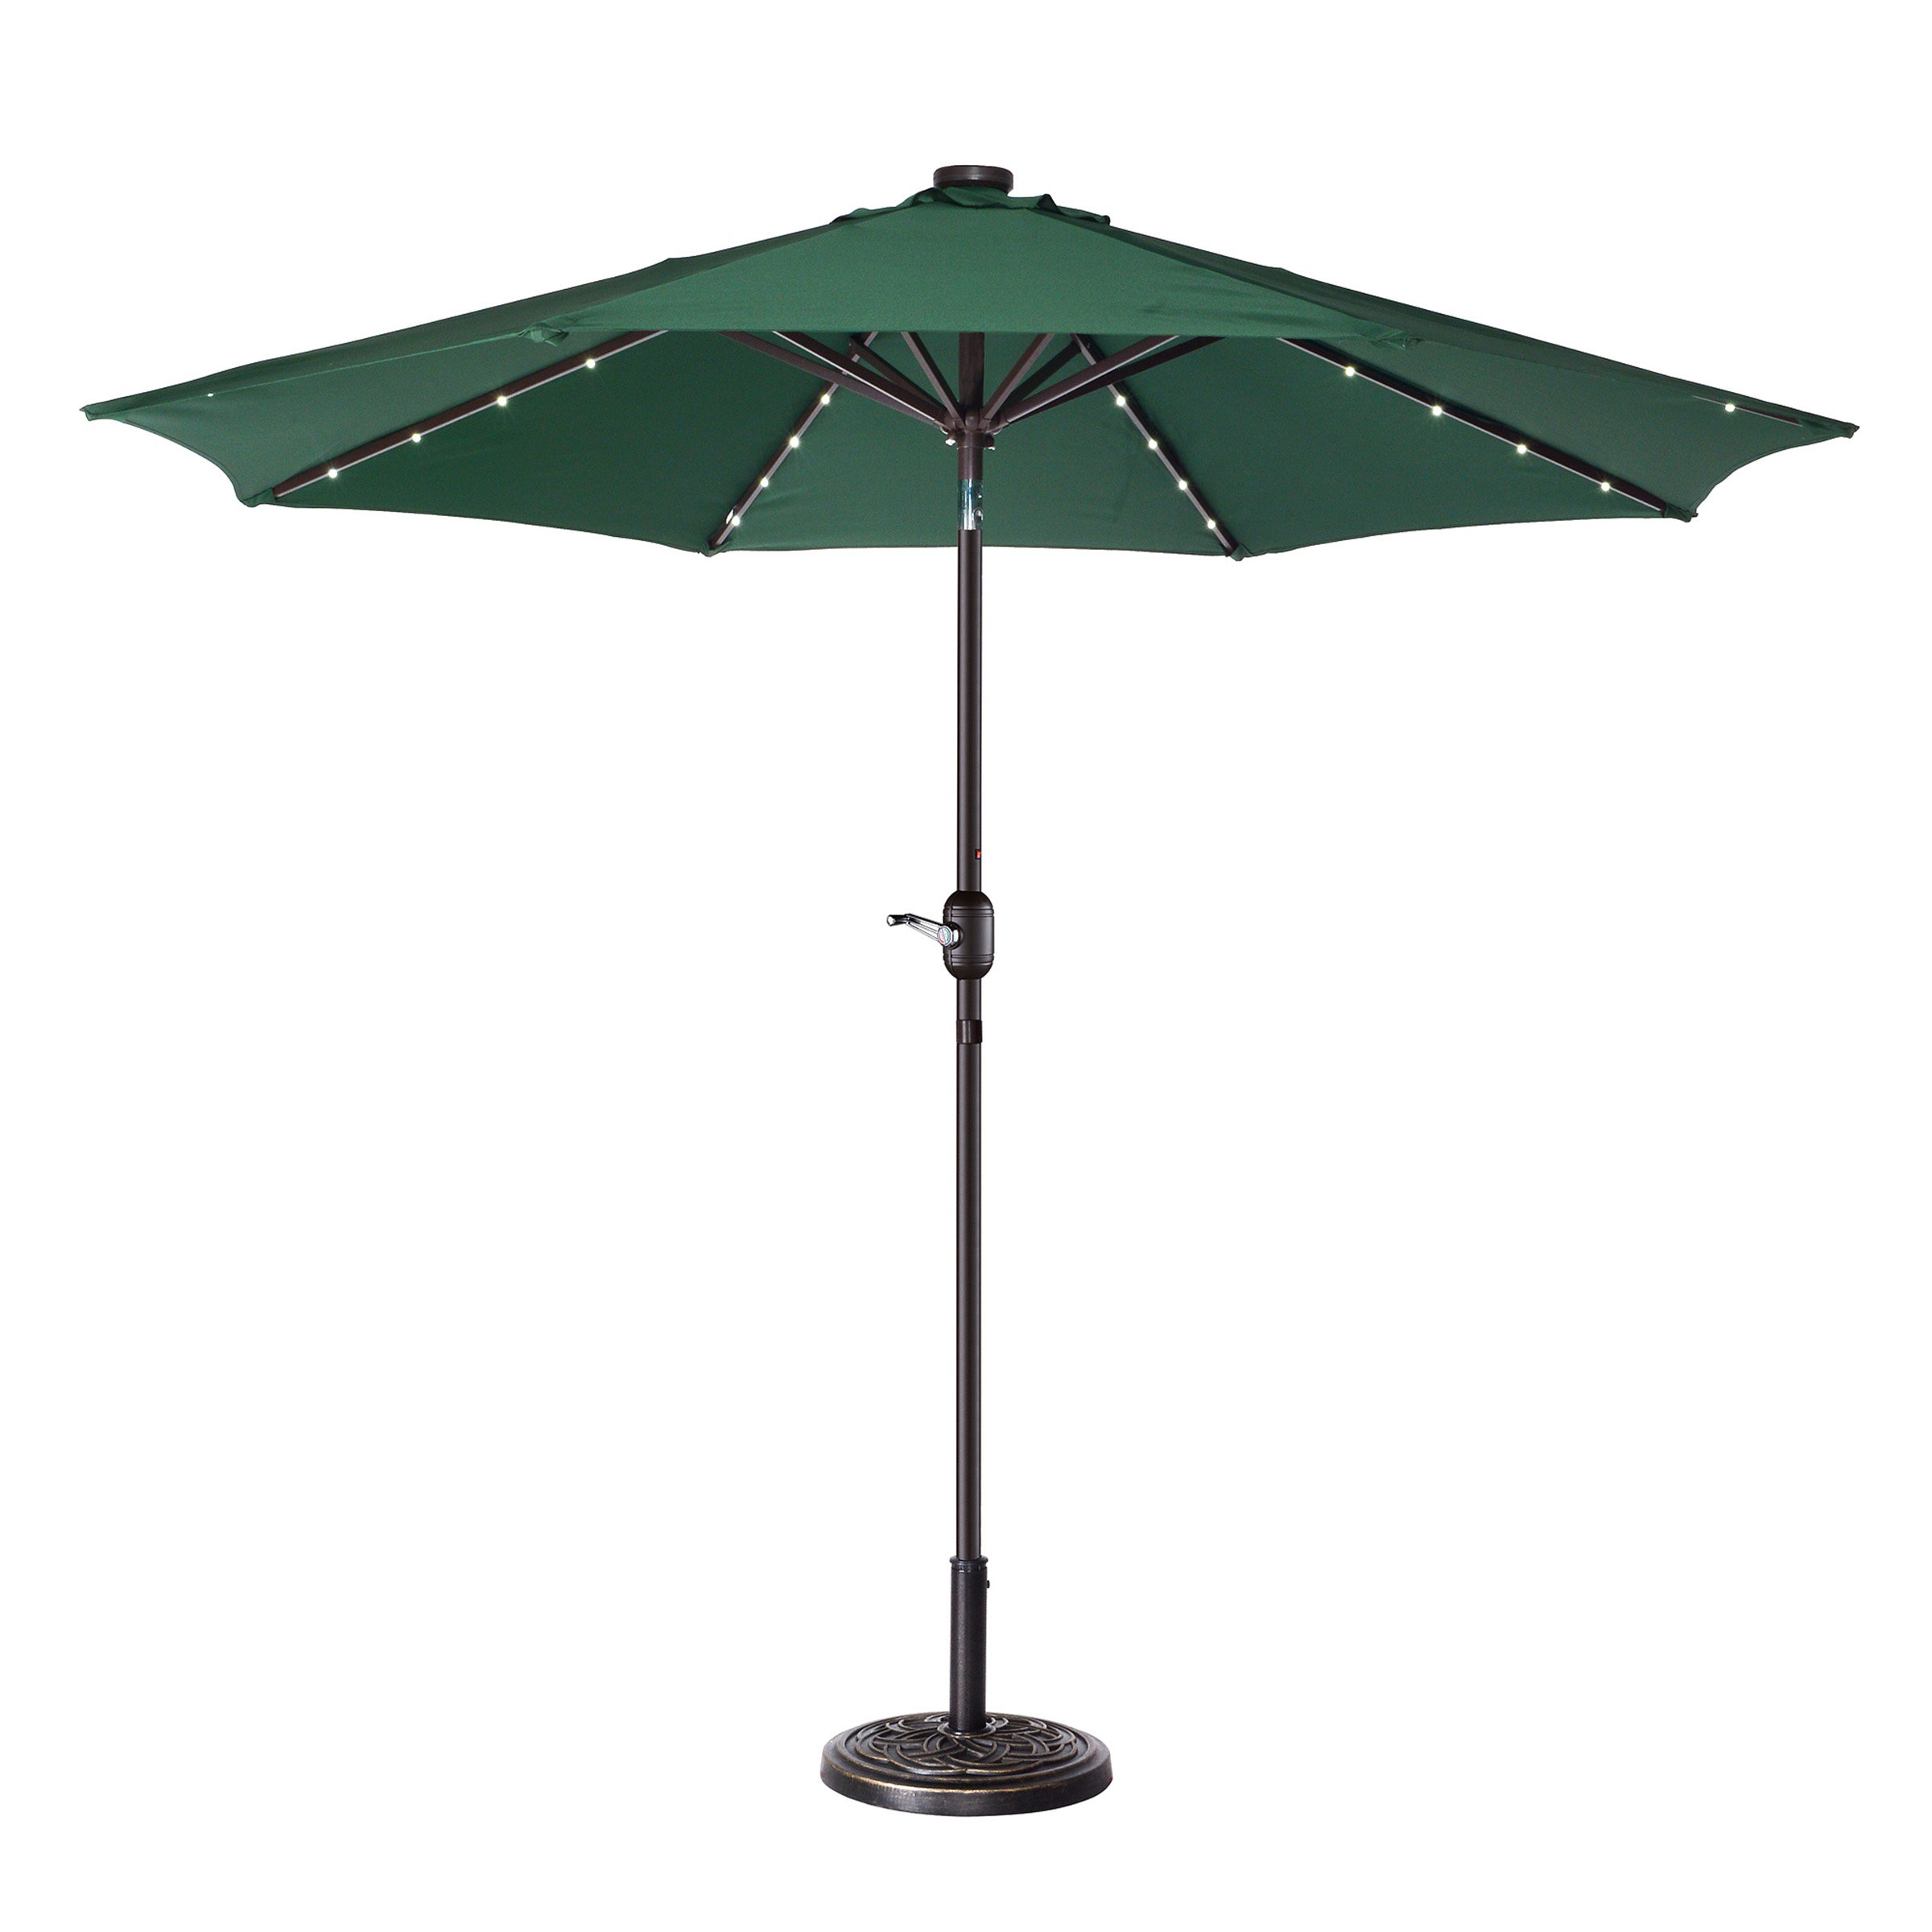 Coggeshall Led Lighted 9' Market Umbrella Regarding Preferred Coggeshall Led Lighted Market Umbrellas (View 6 of 20)